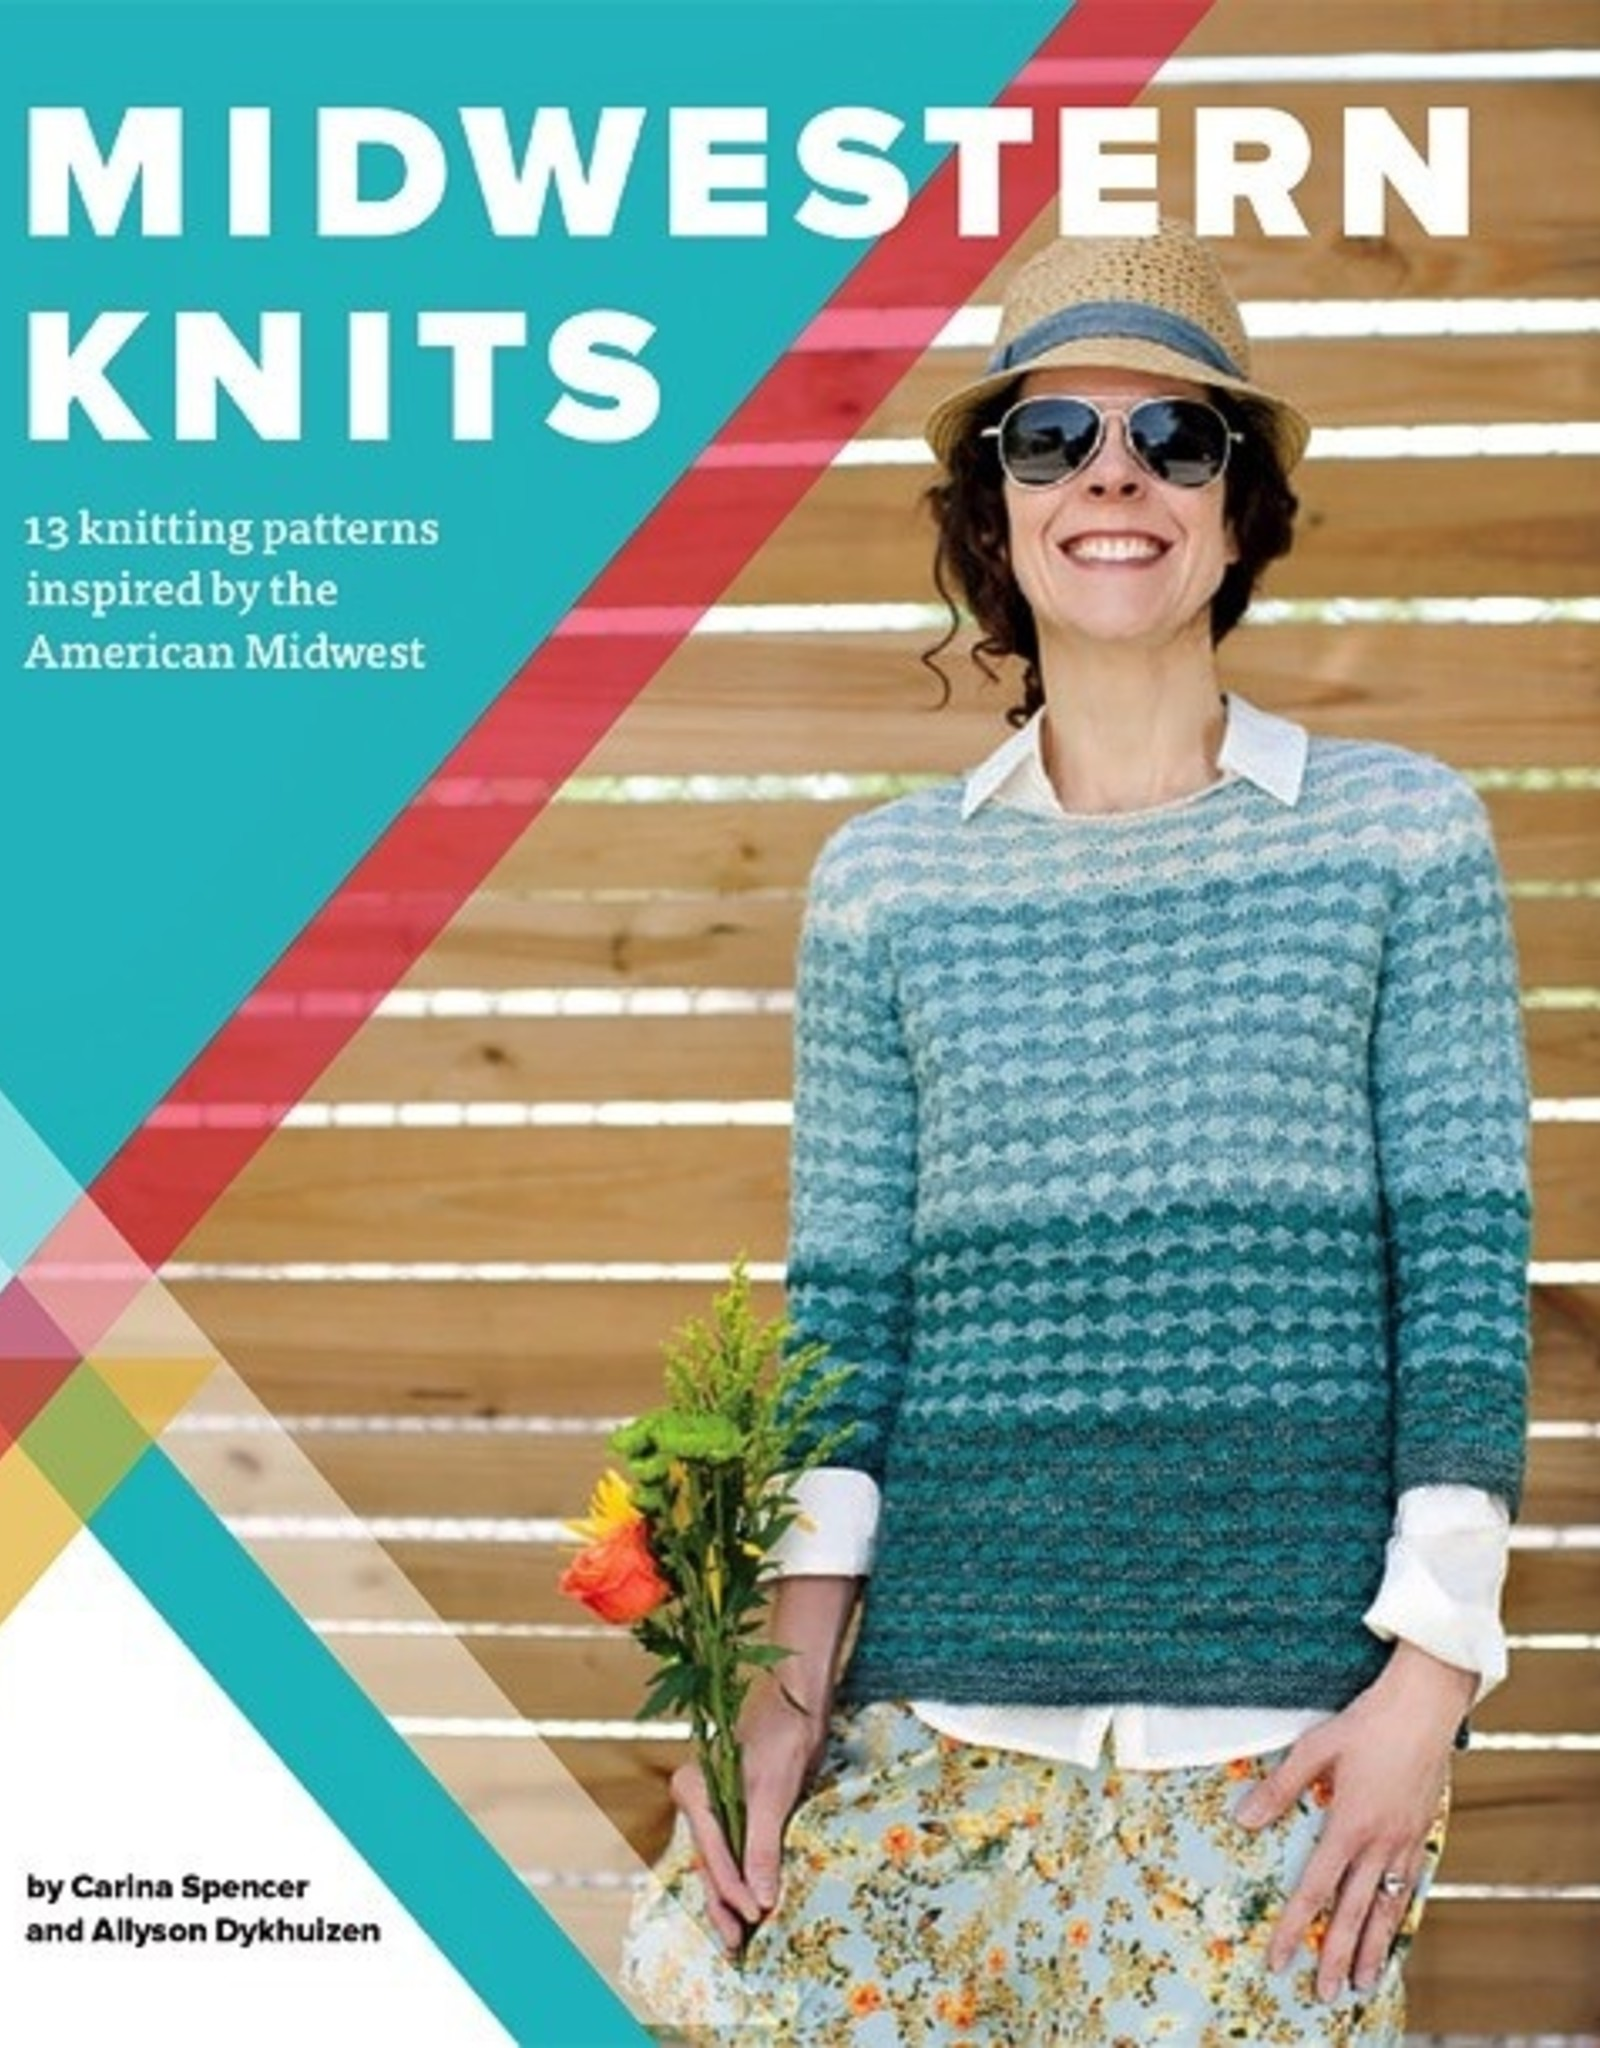 Midwestern Knits